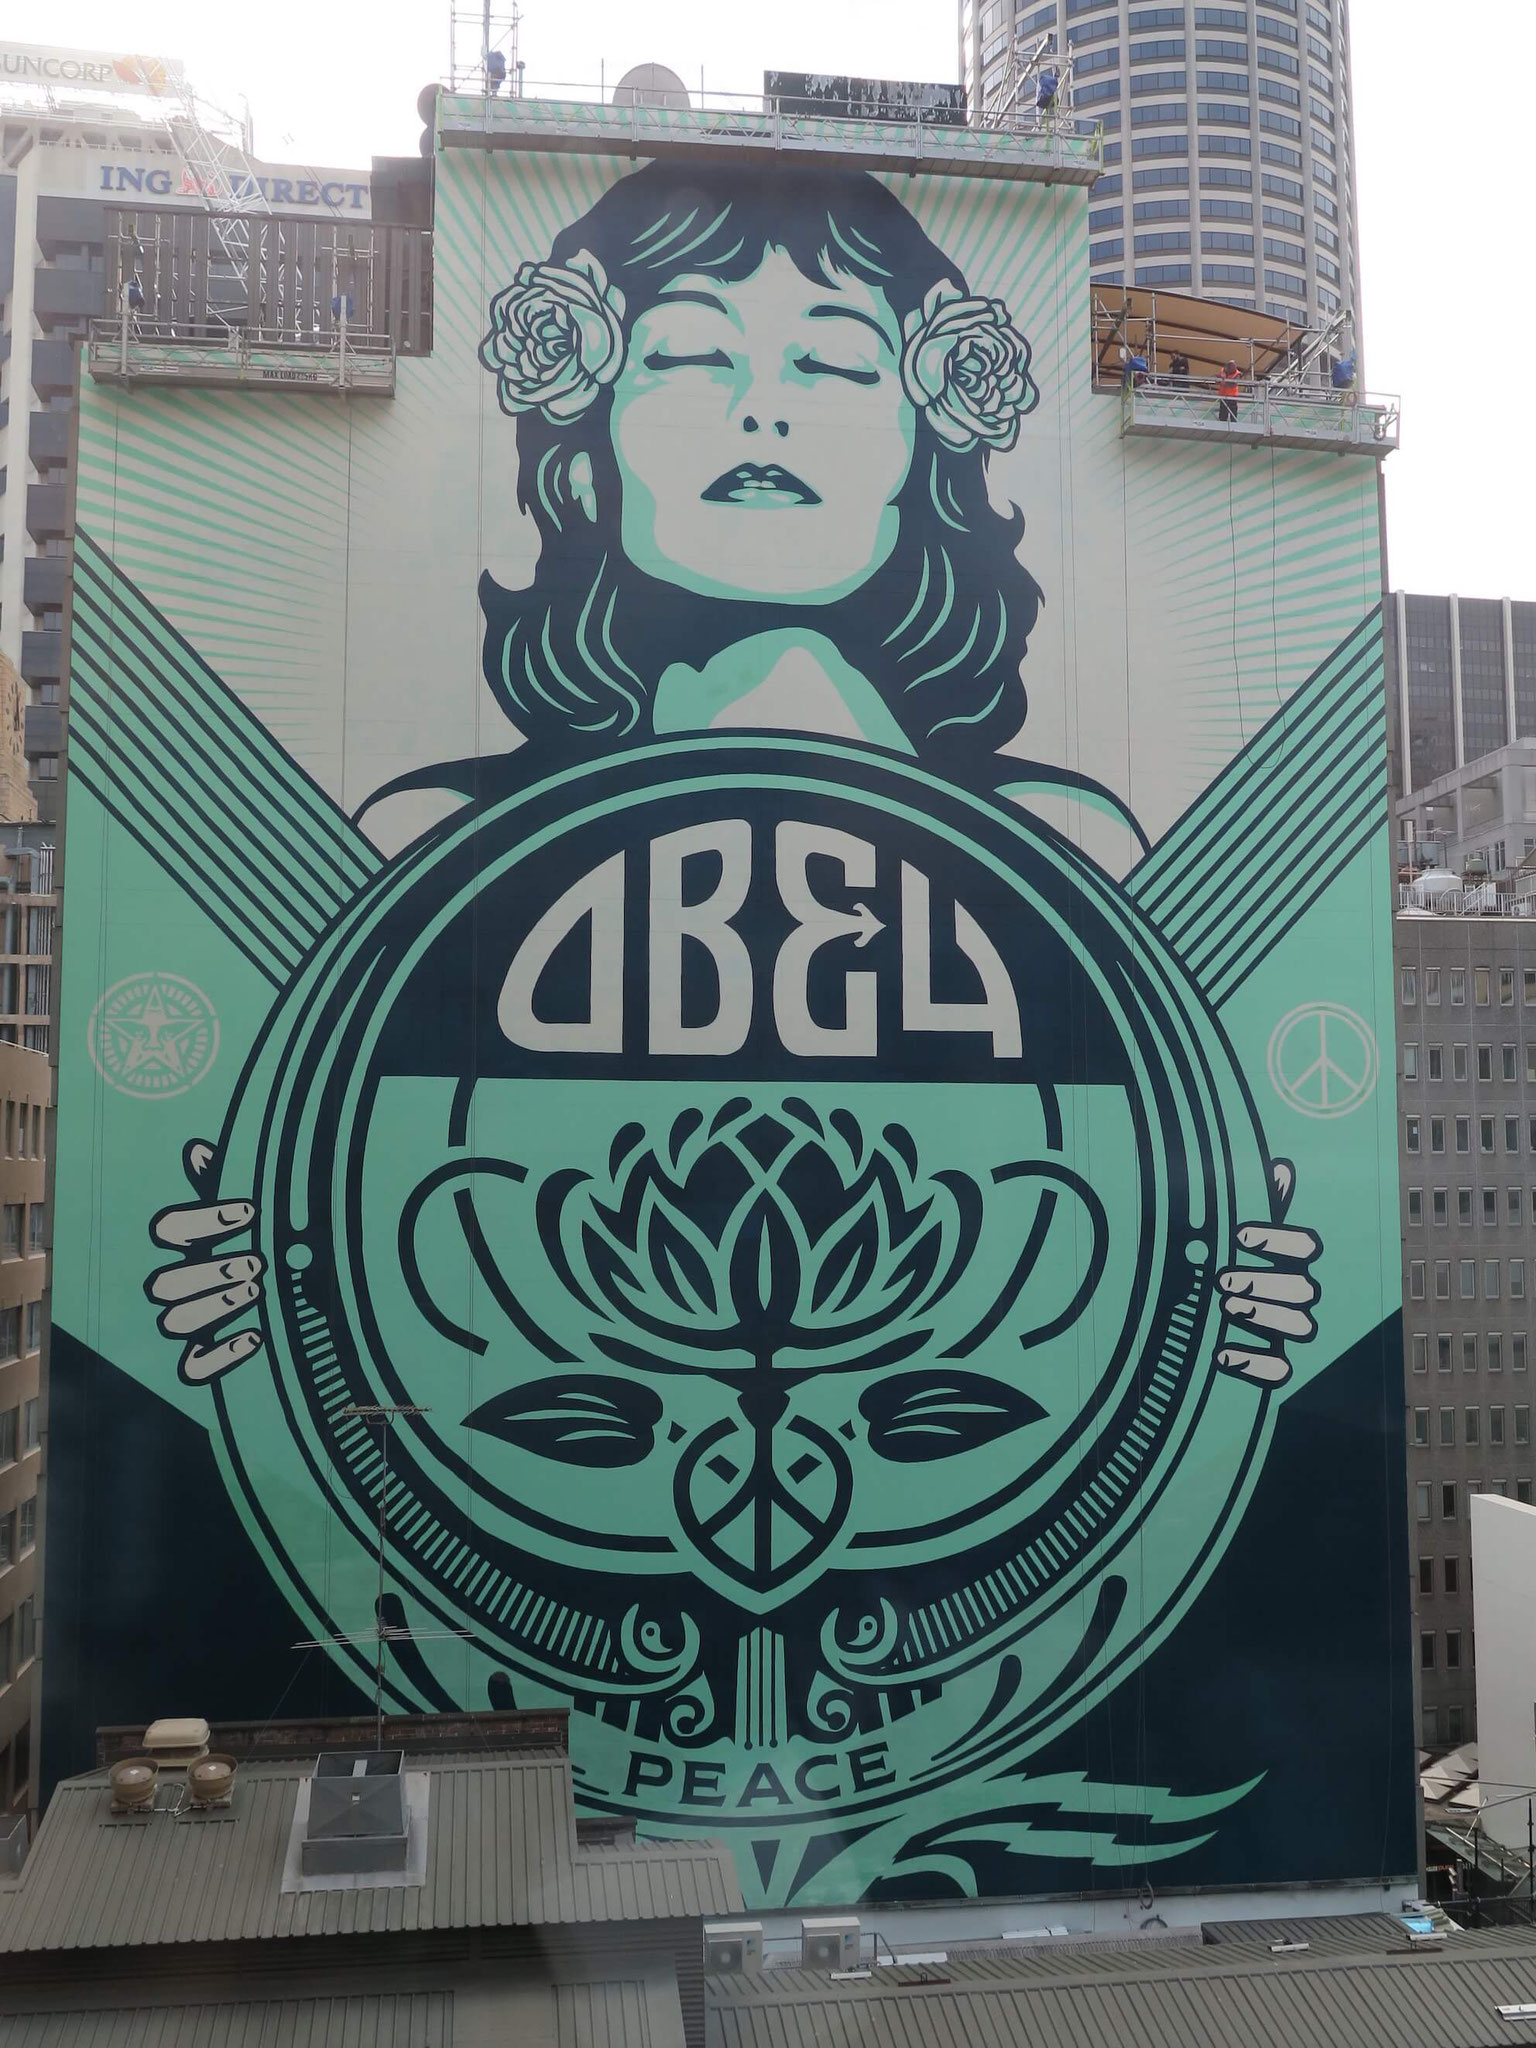 top-100-street-art-2017-best-of-murals-graffiti-obey-giant-01.jpg